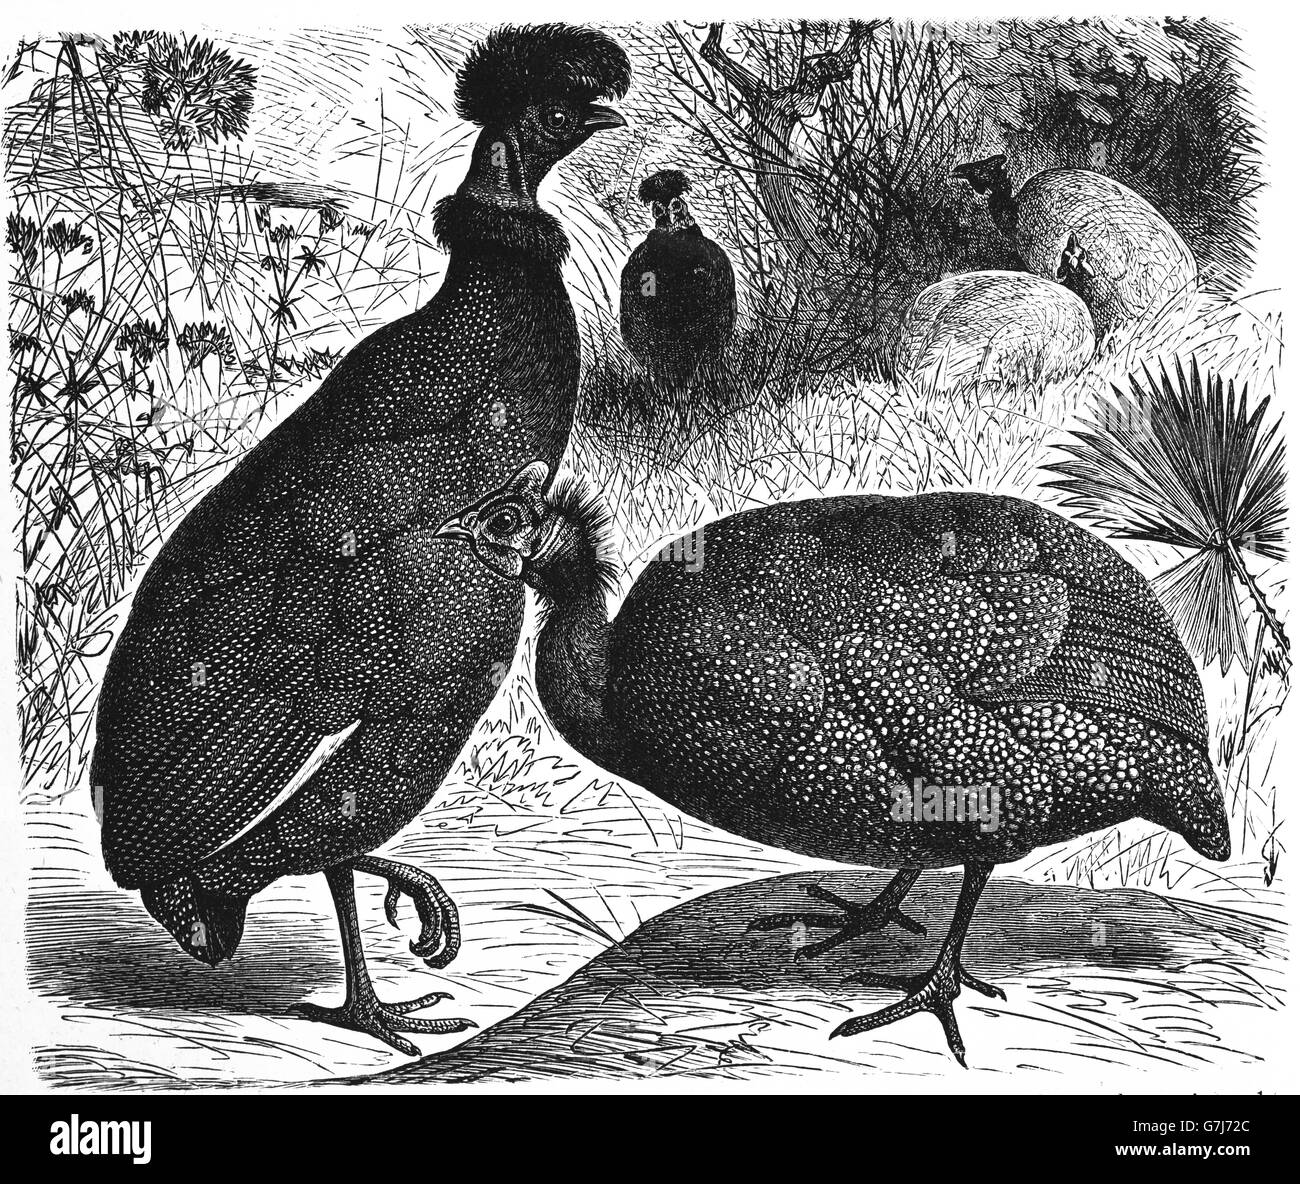 Crested guineafowl, Guttera pucherani and helmeted guineafowl, Numida meleagris, illustration from book dated 1904 - Stock Image